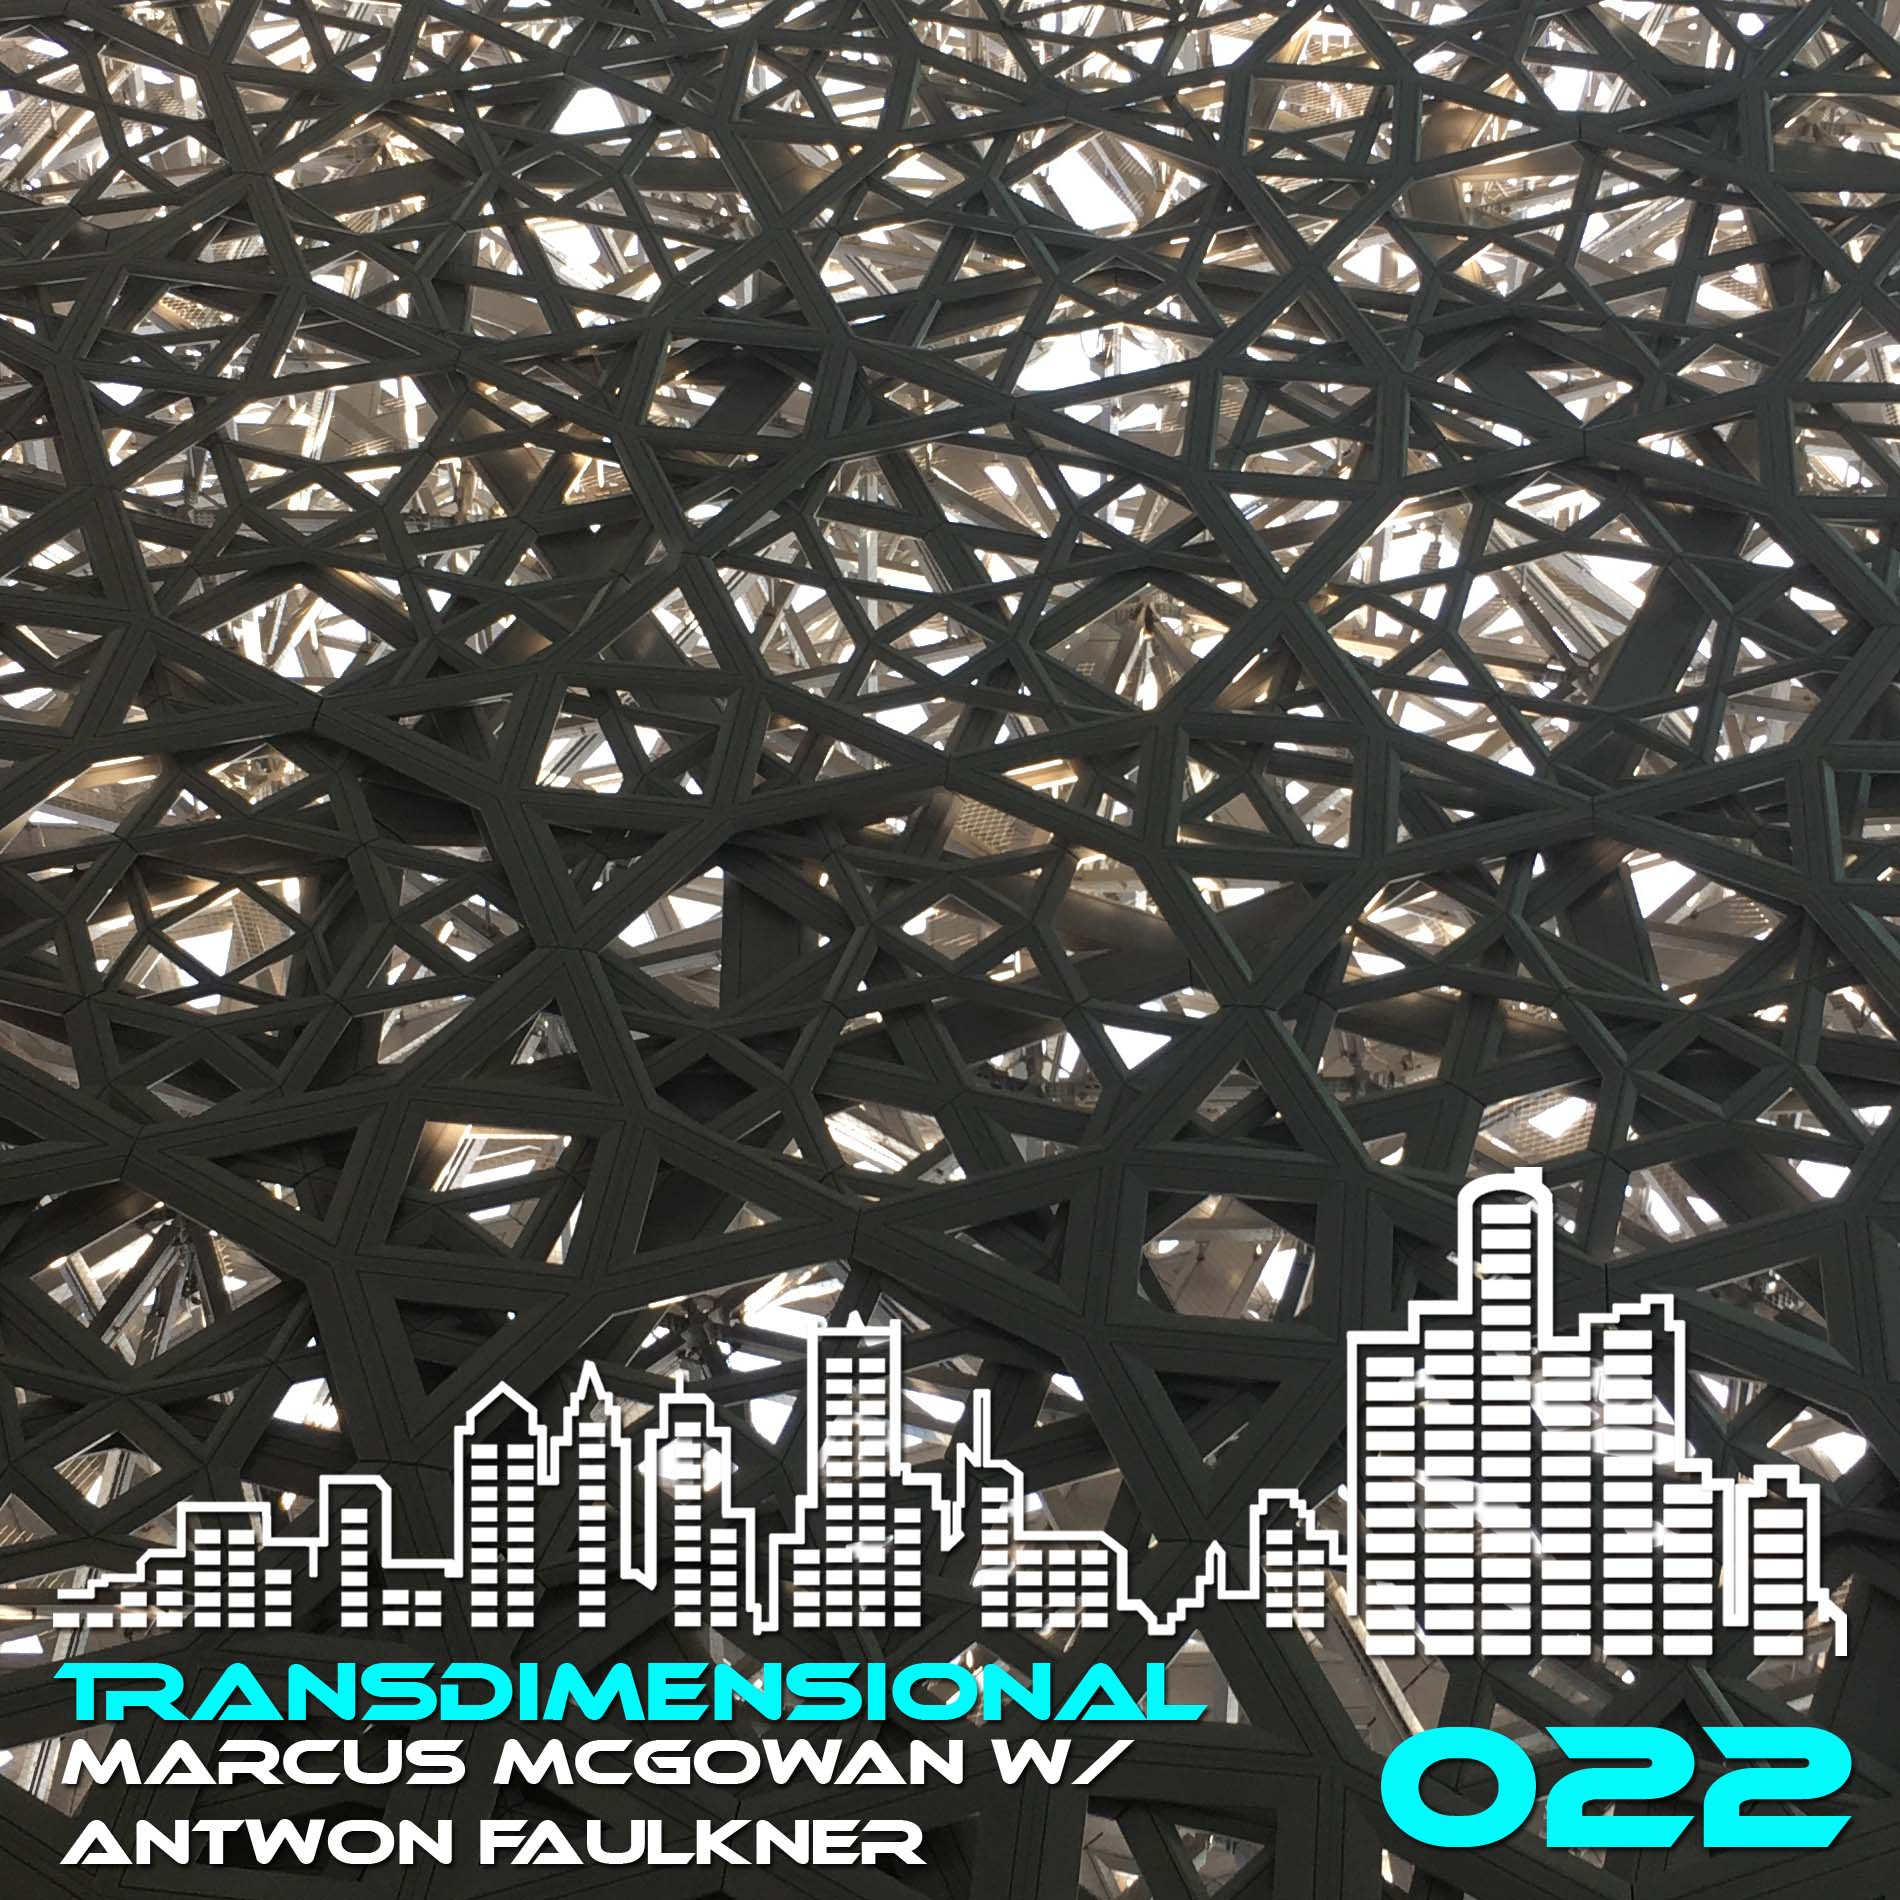 Hijacked Records Detroit presents Transdimensional by Marcus McGowan